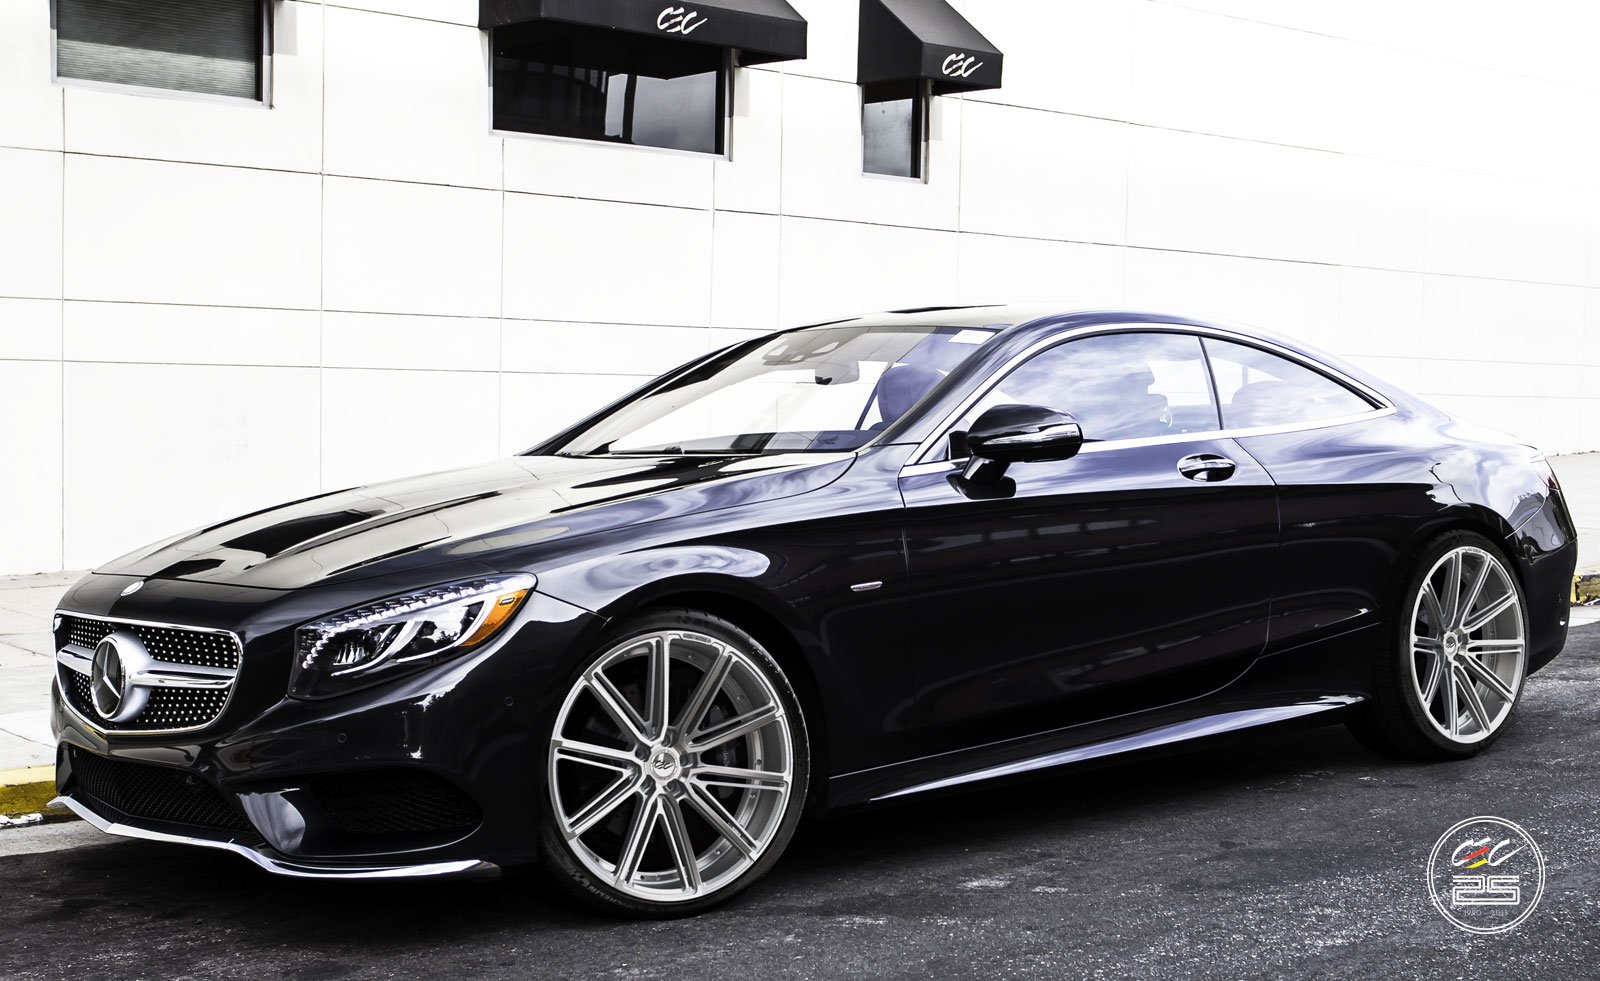 2015 Cec Wheels Tuning Cars Mercedes Benz S550 Coupe